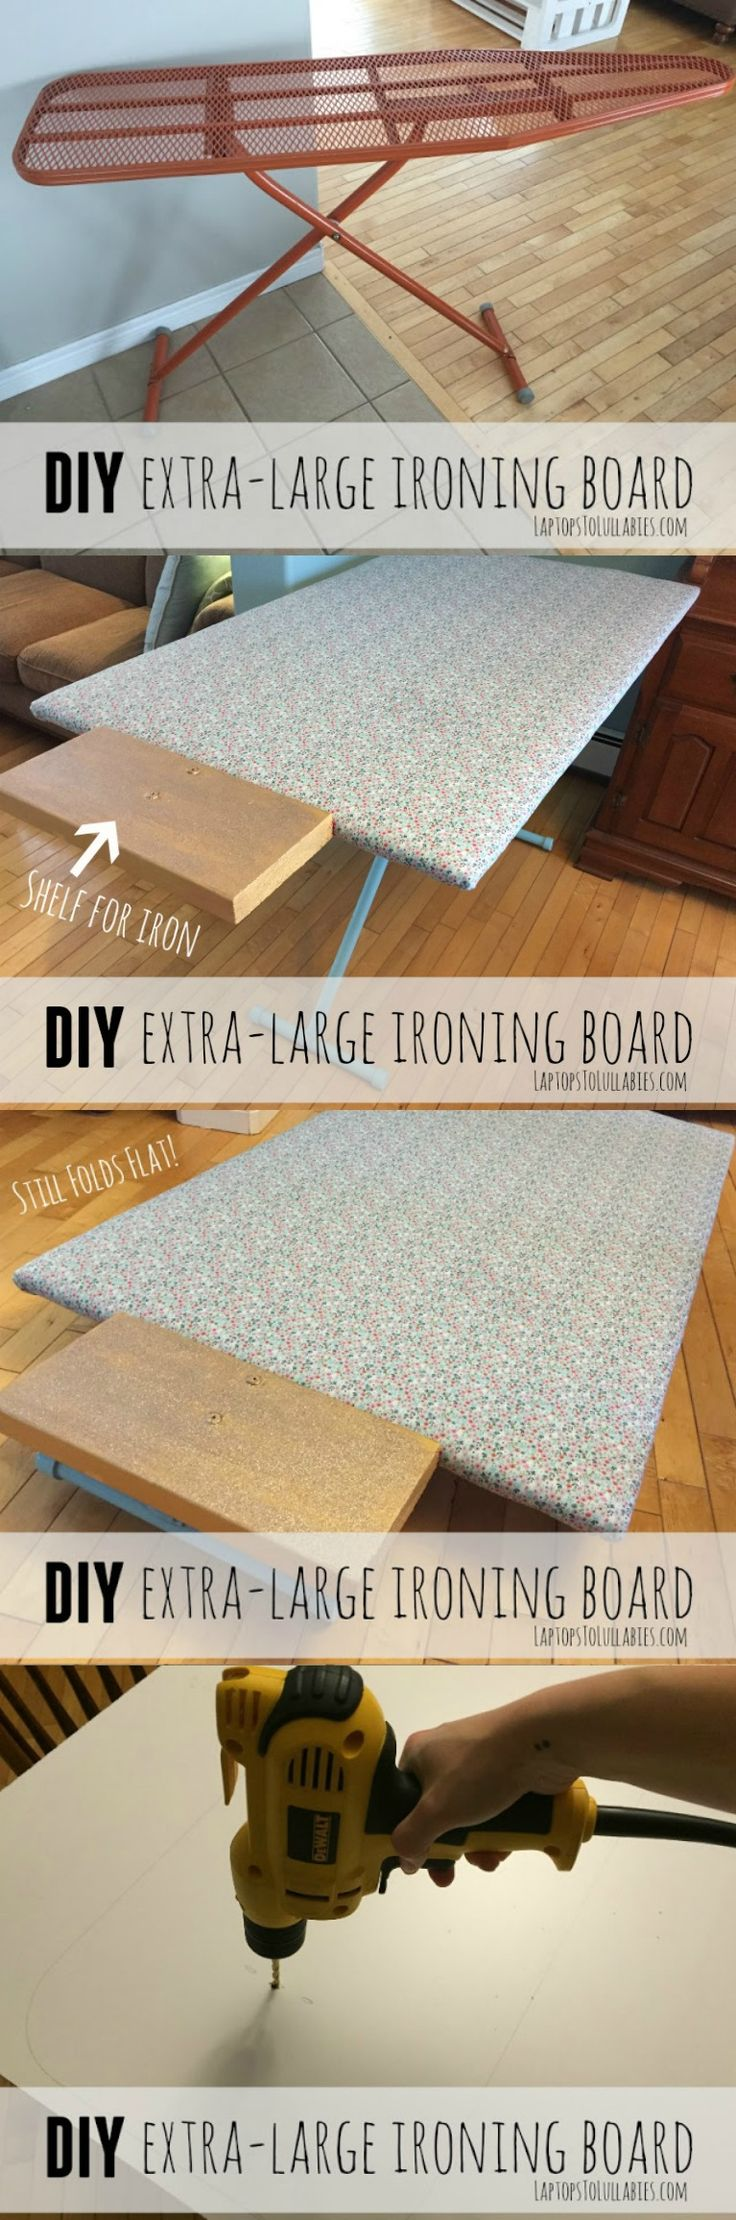 DIY oversized ironing board for quilting and sewing // Make your own!